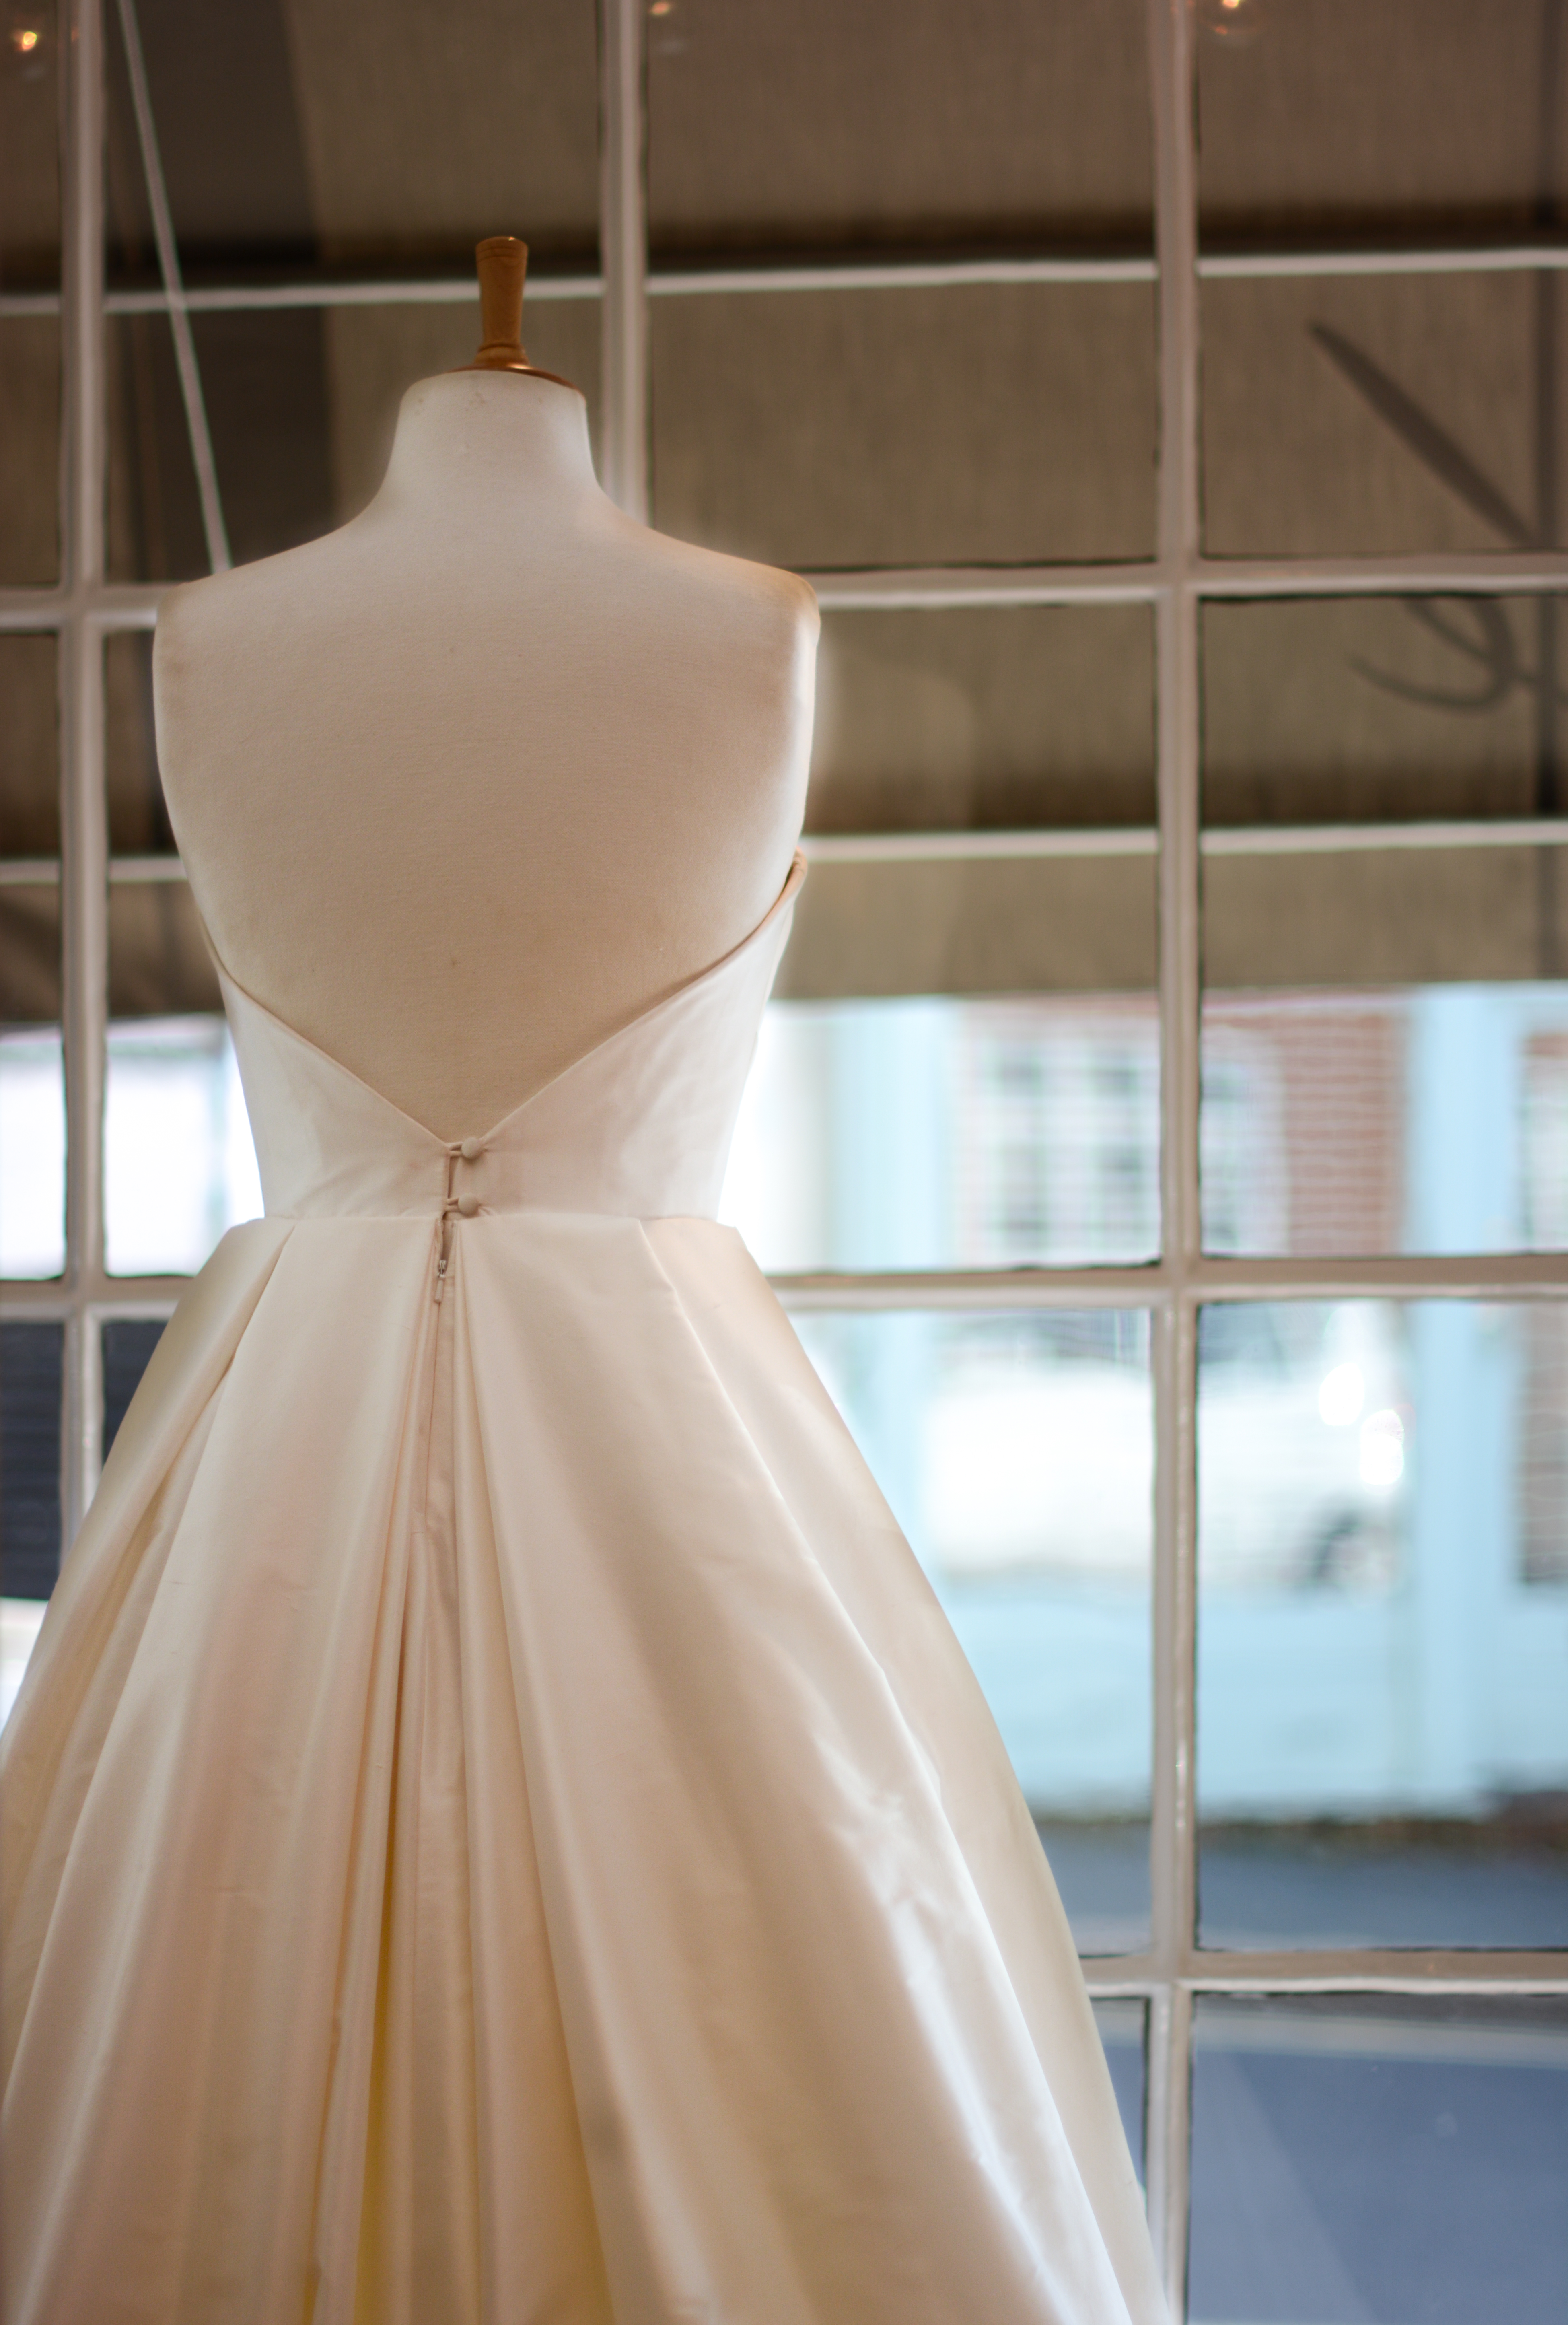 Making A Dress Truly Yours